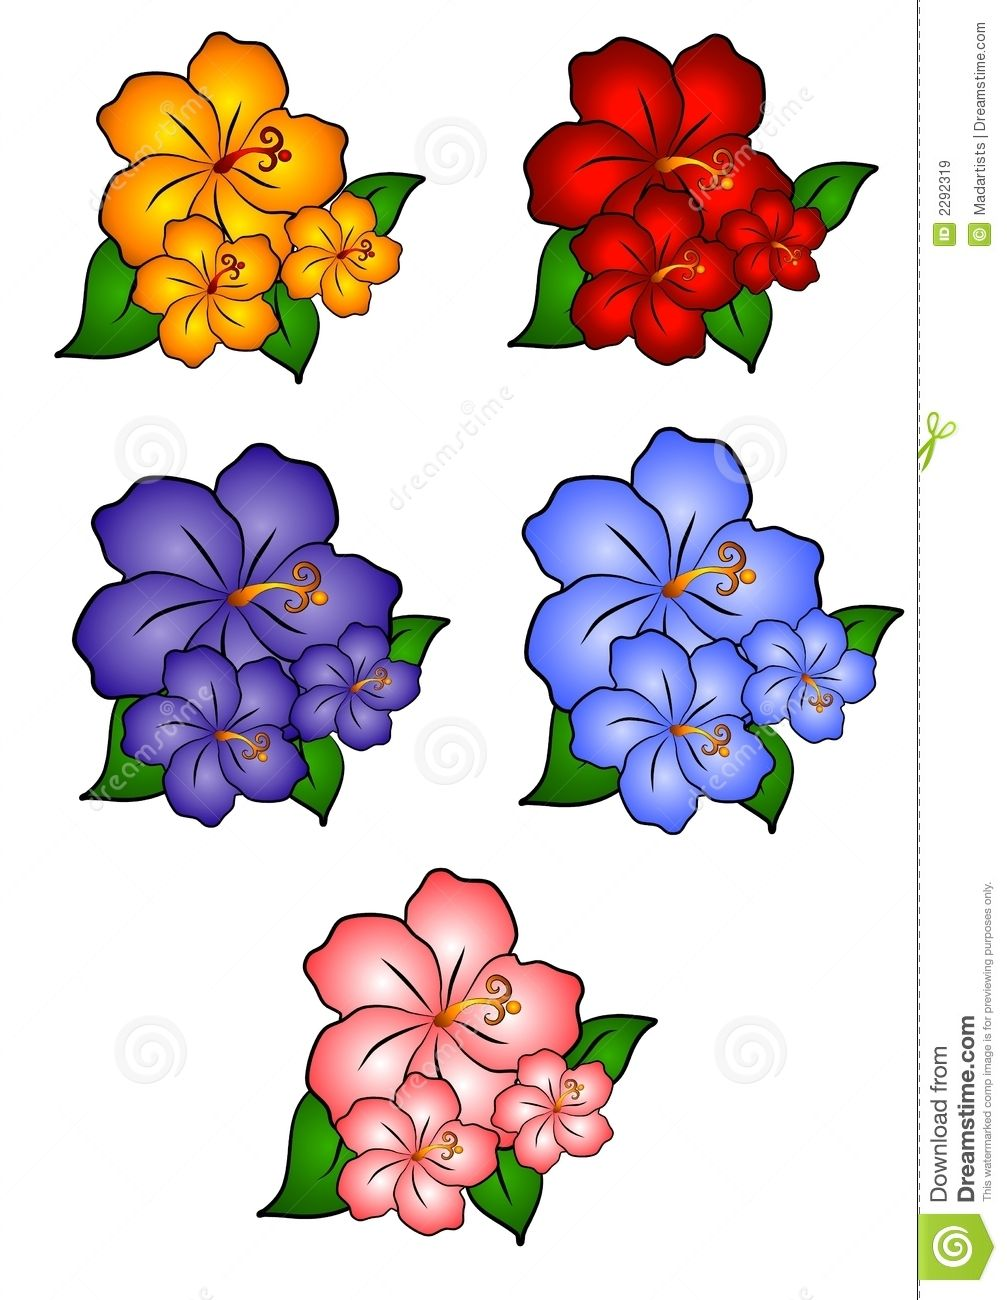 flower clip art free hawaiian flower border clip art 5 hawaiian rh pinterest com hawaiian christmas images clip art